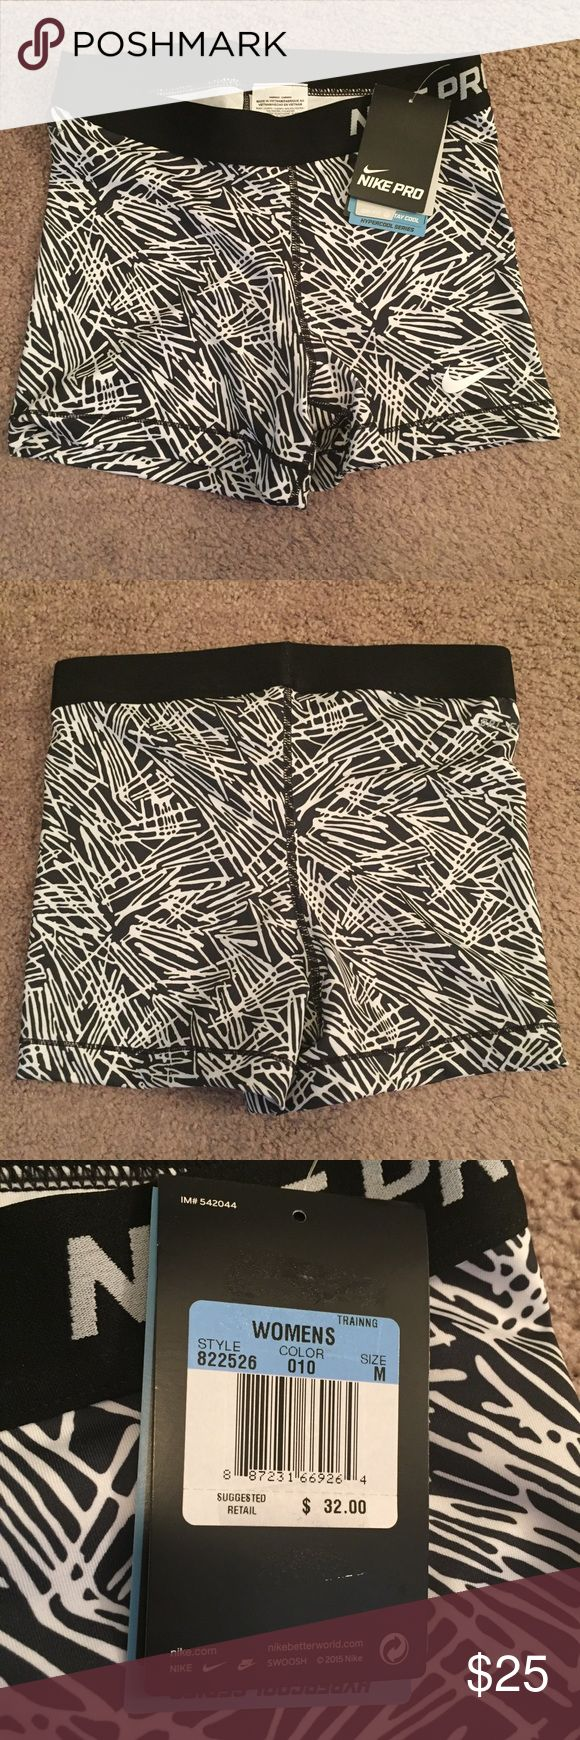 """Nike Pro Dri-Fit 3"""" Shorts NWT Size M Nike Pro dri-fit shorts. 3"""" shorts in black and white print. New with tags never worn. Women's size medium. NO TRADES. All offers please use button. Nike Shorts"""